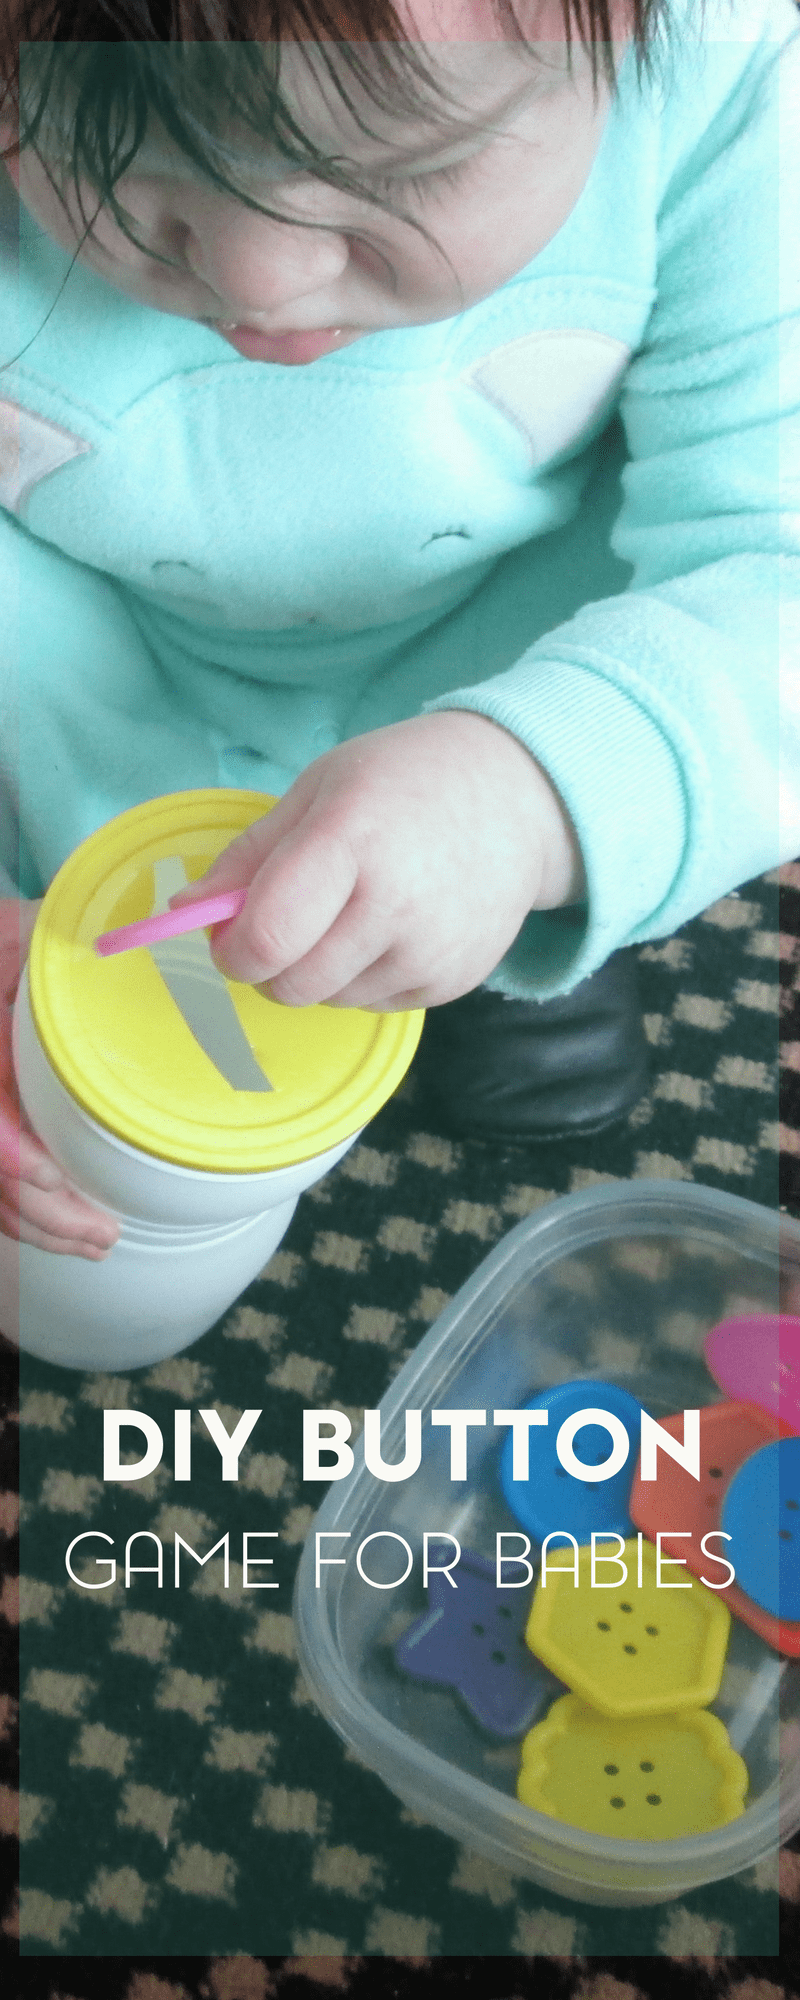 This easy DIY button game for babies uses materials you probably already have on hand.